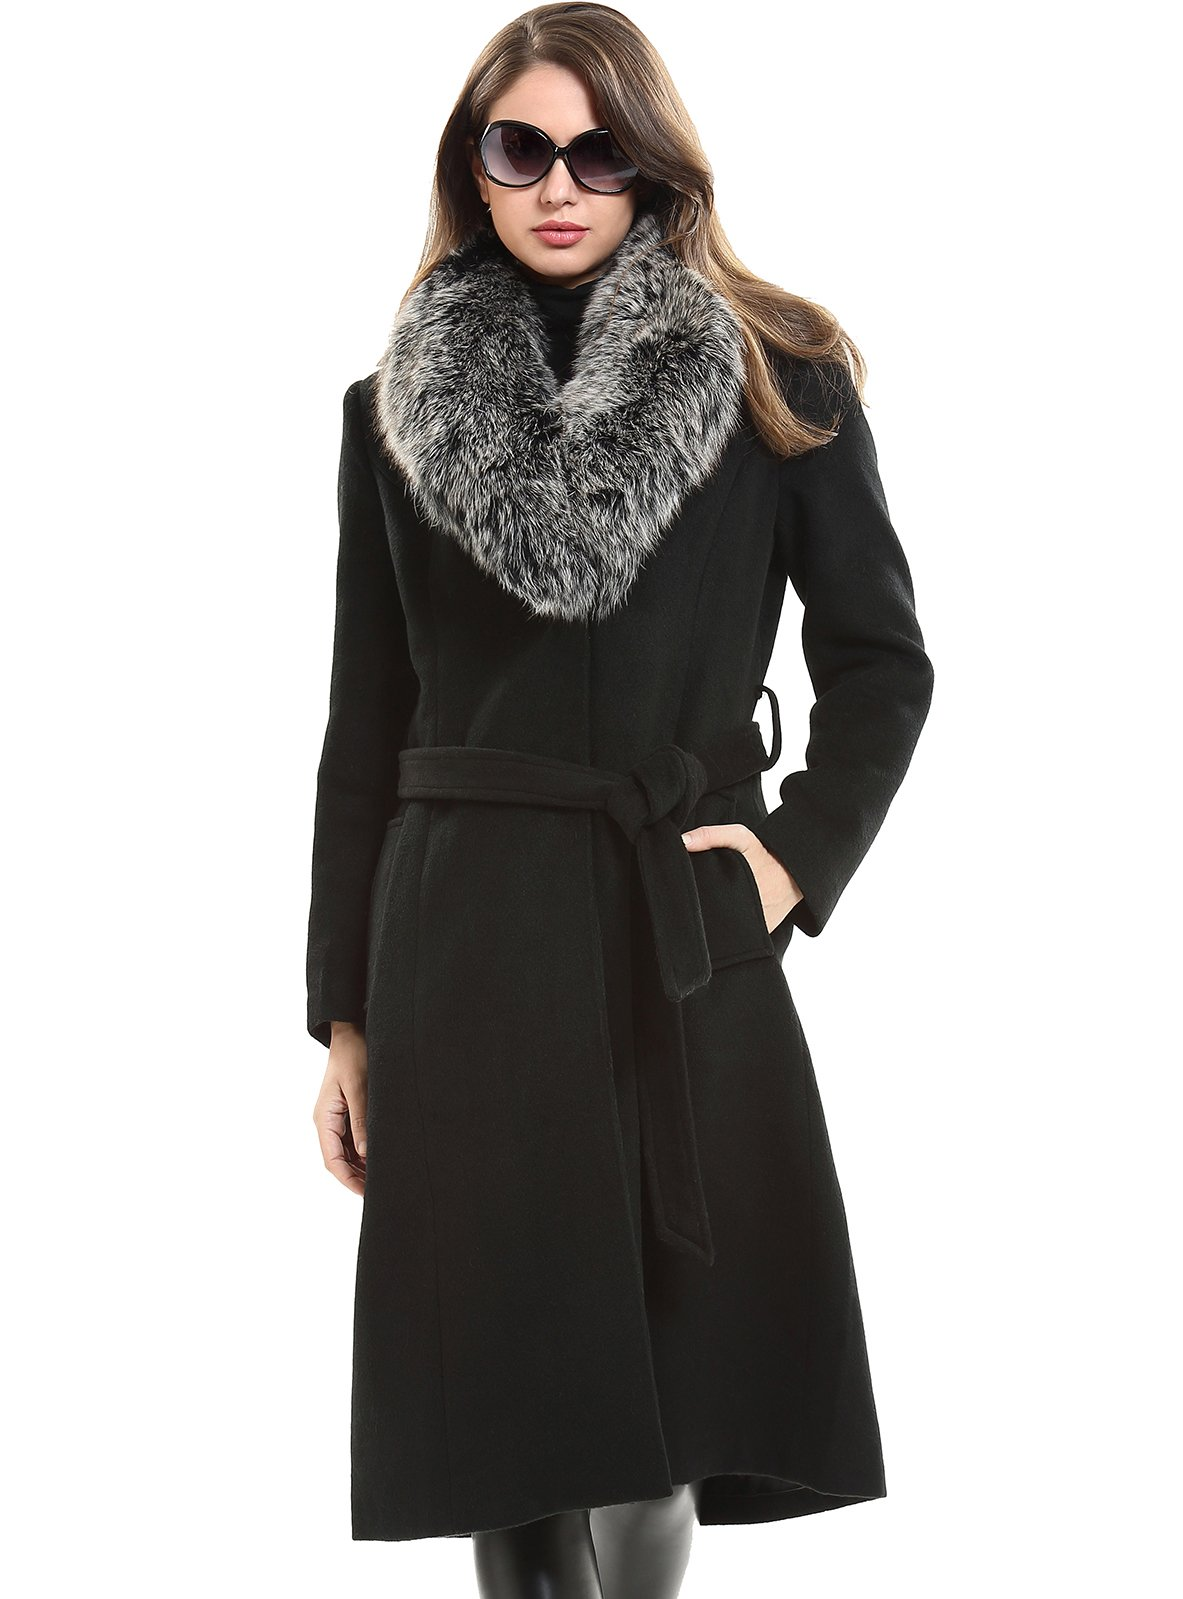 Escalier Women`s Wool Trench Belt Long Coat with Fur Collar Black 4XL by Escalier (Image #1)